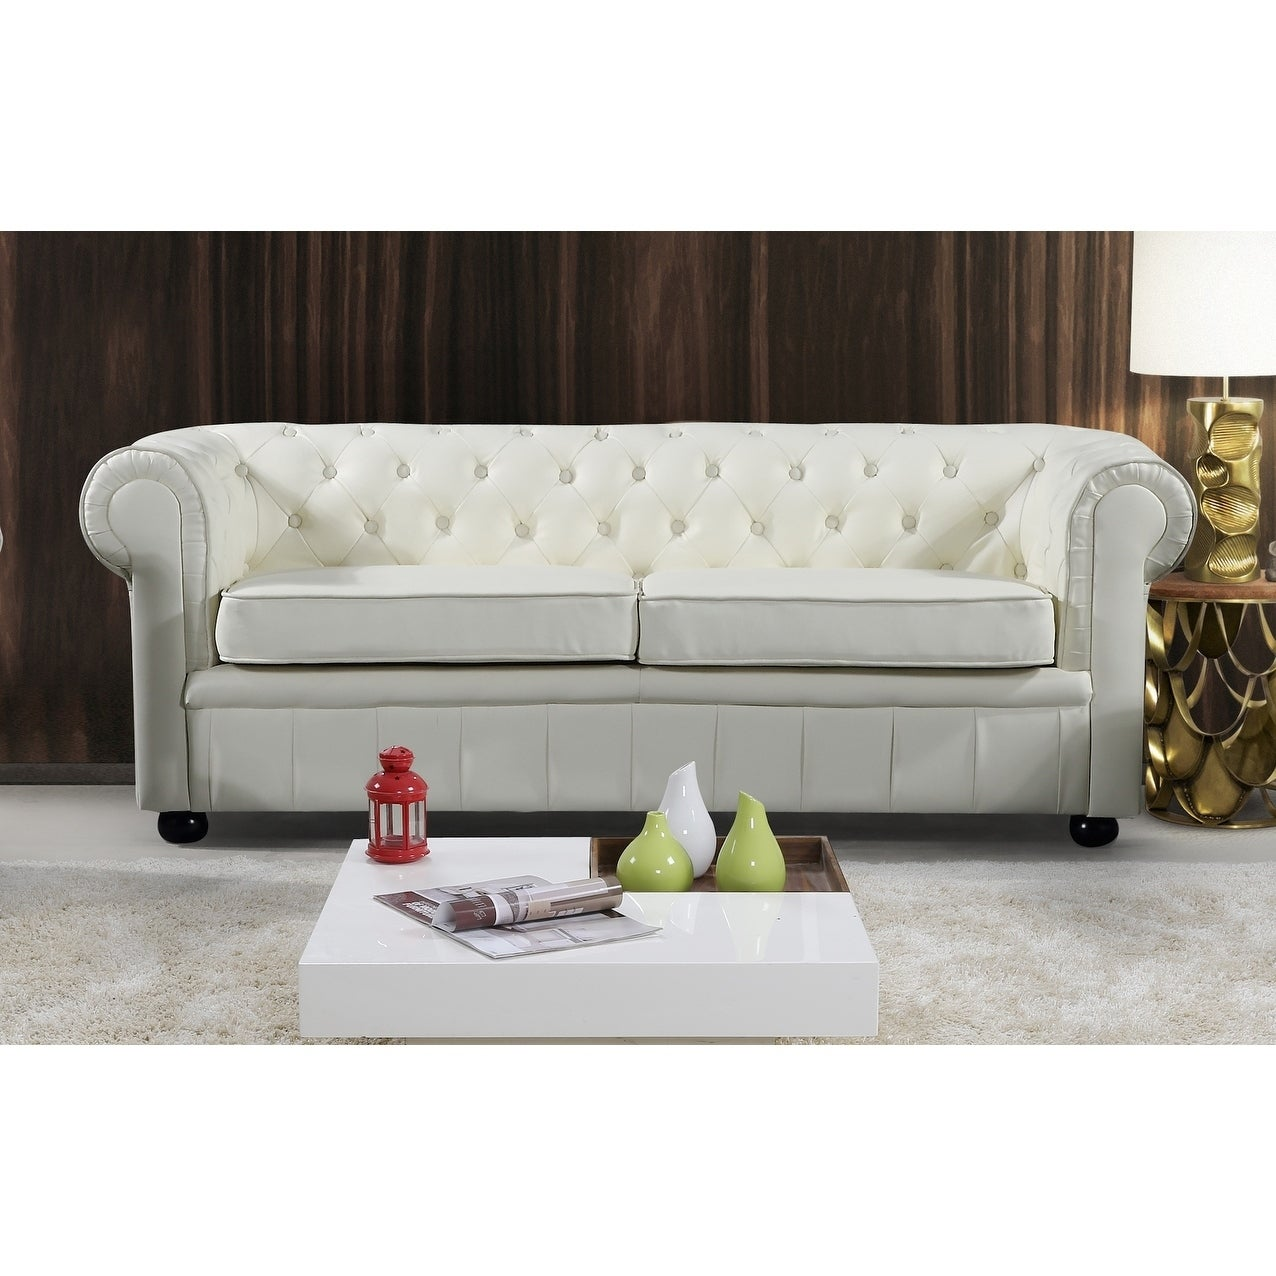 Delicieux Shop Cream Genuine Leather Chesterfield Style 3 Seater Sofa   AVIGNON    Free Shipping Today   Overstock.com   7972869